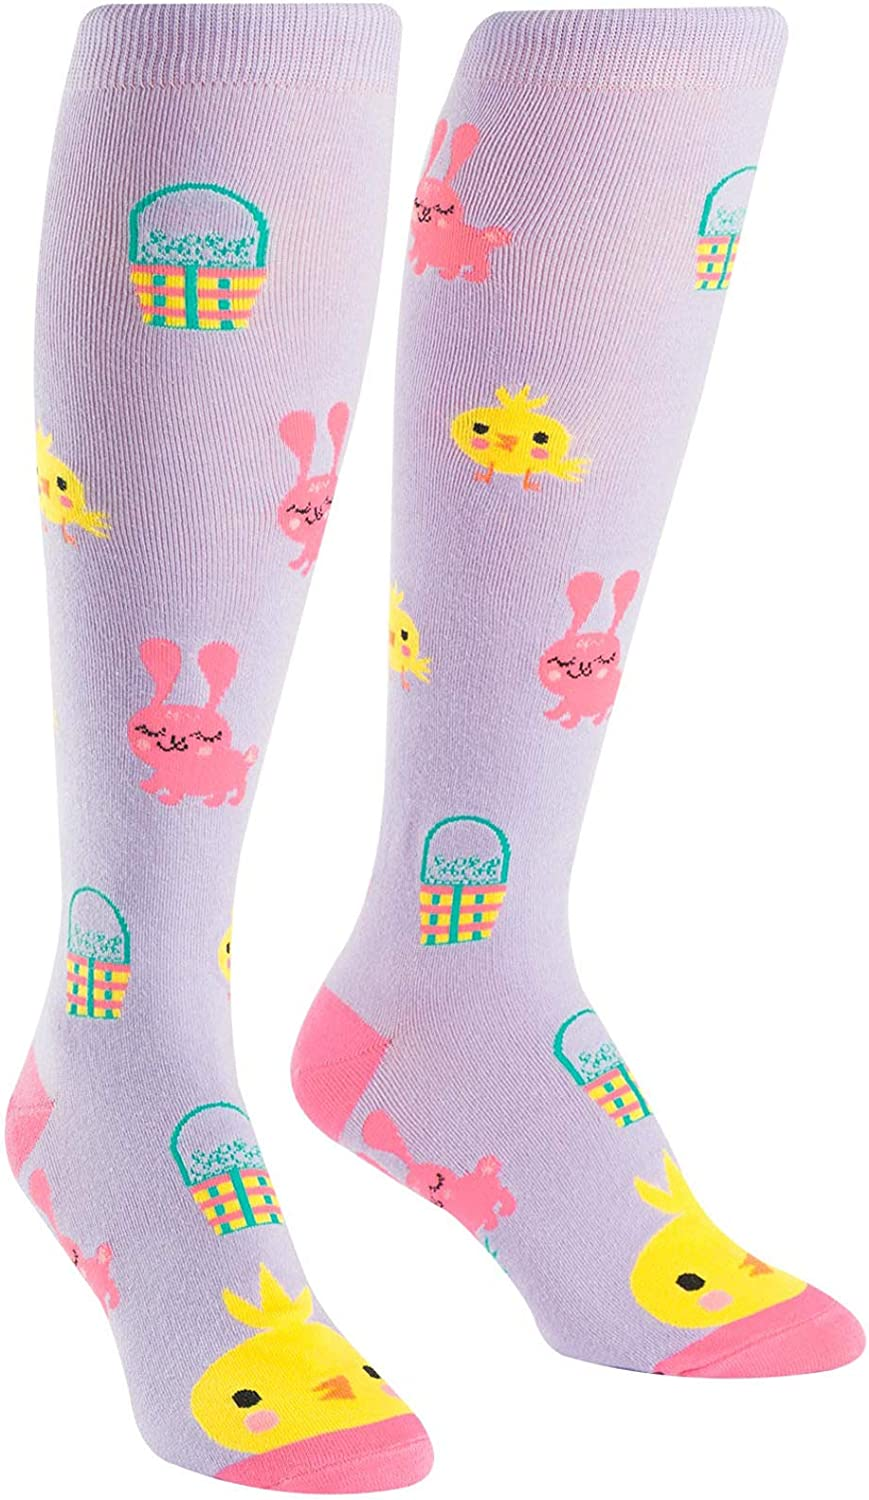 Athletic Sports,Yoga. Easter Womens Knee High Socks Fancy Design Best For Running